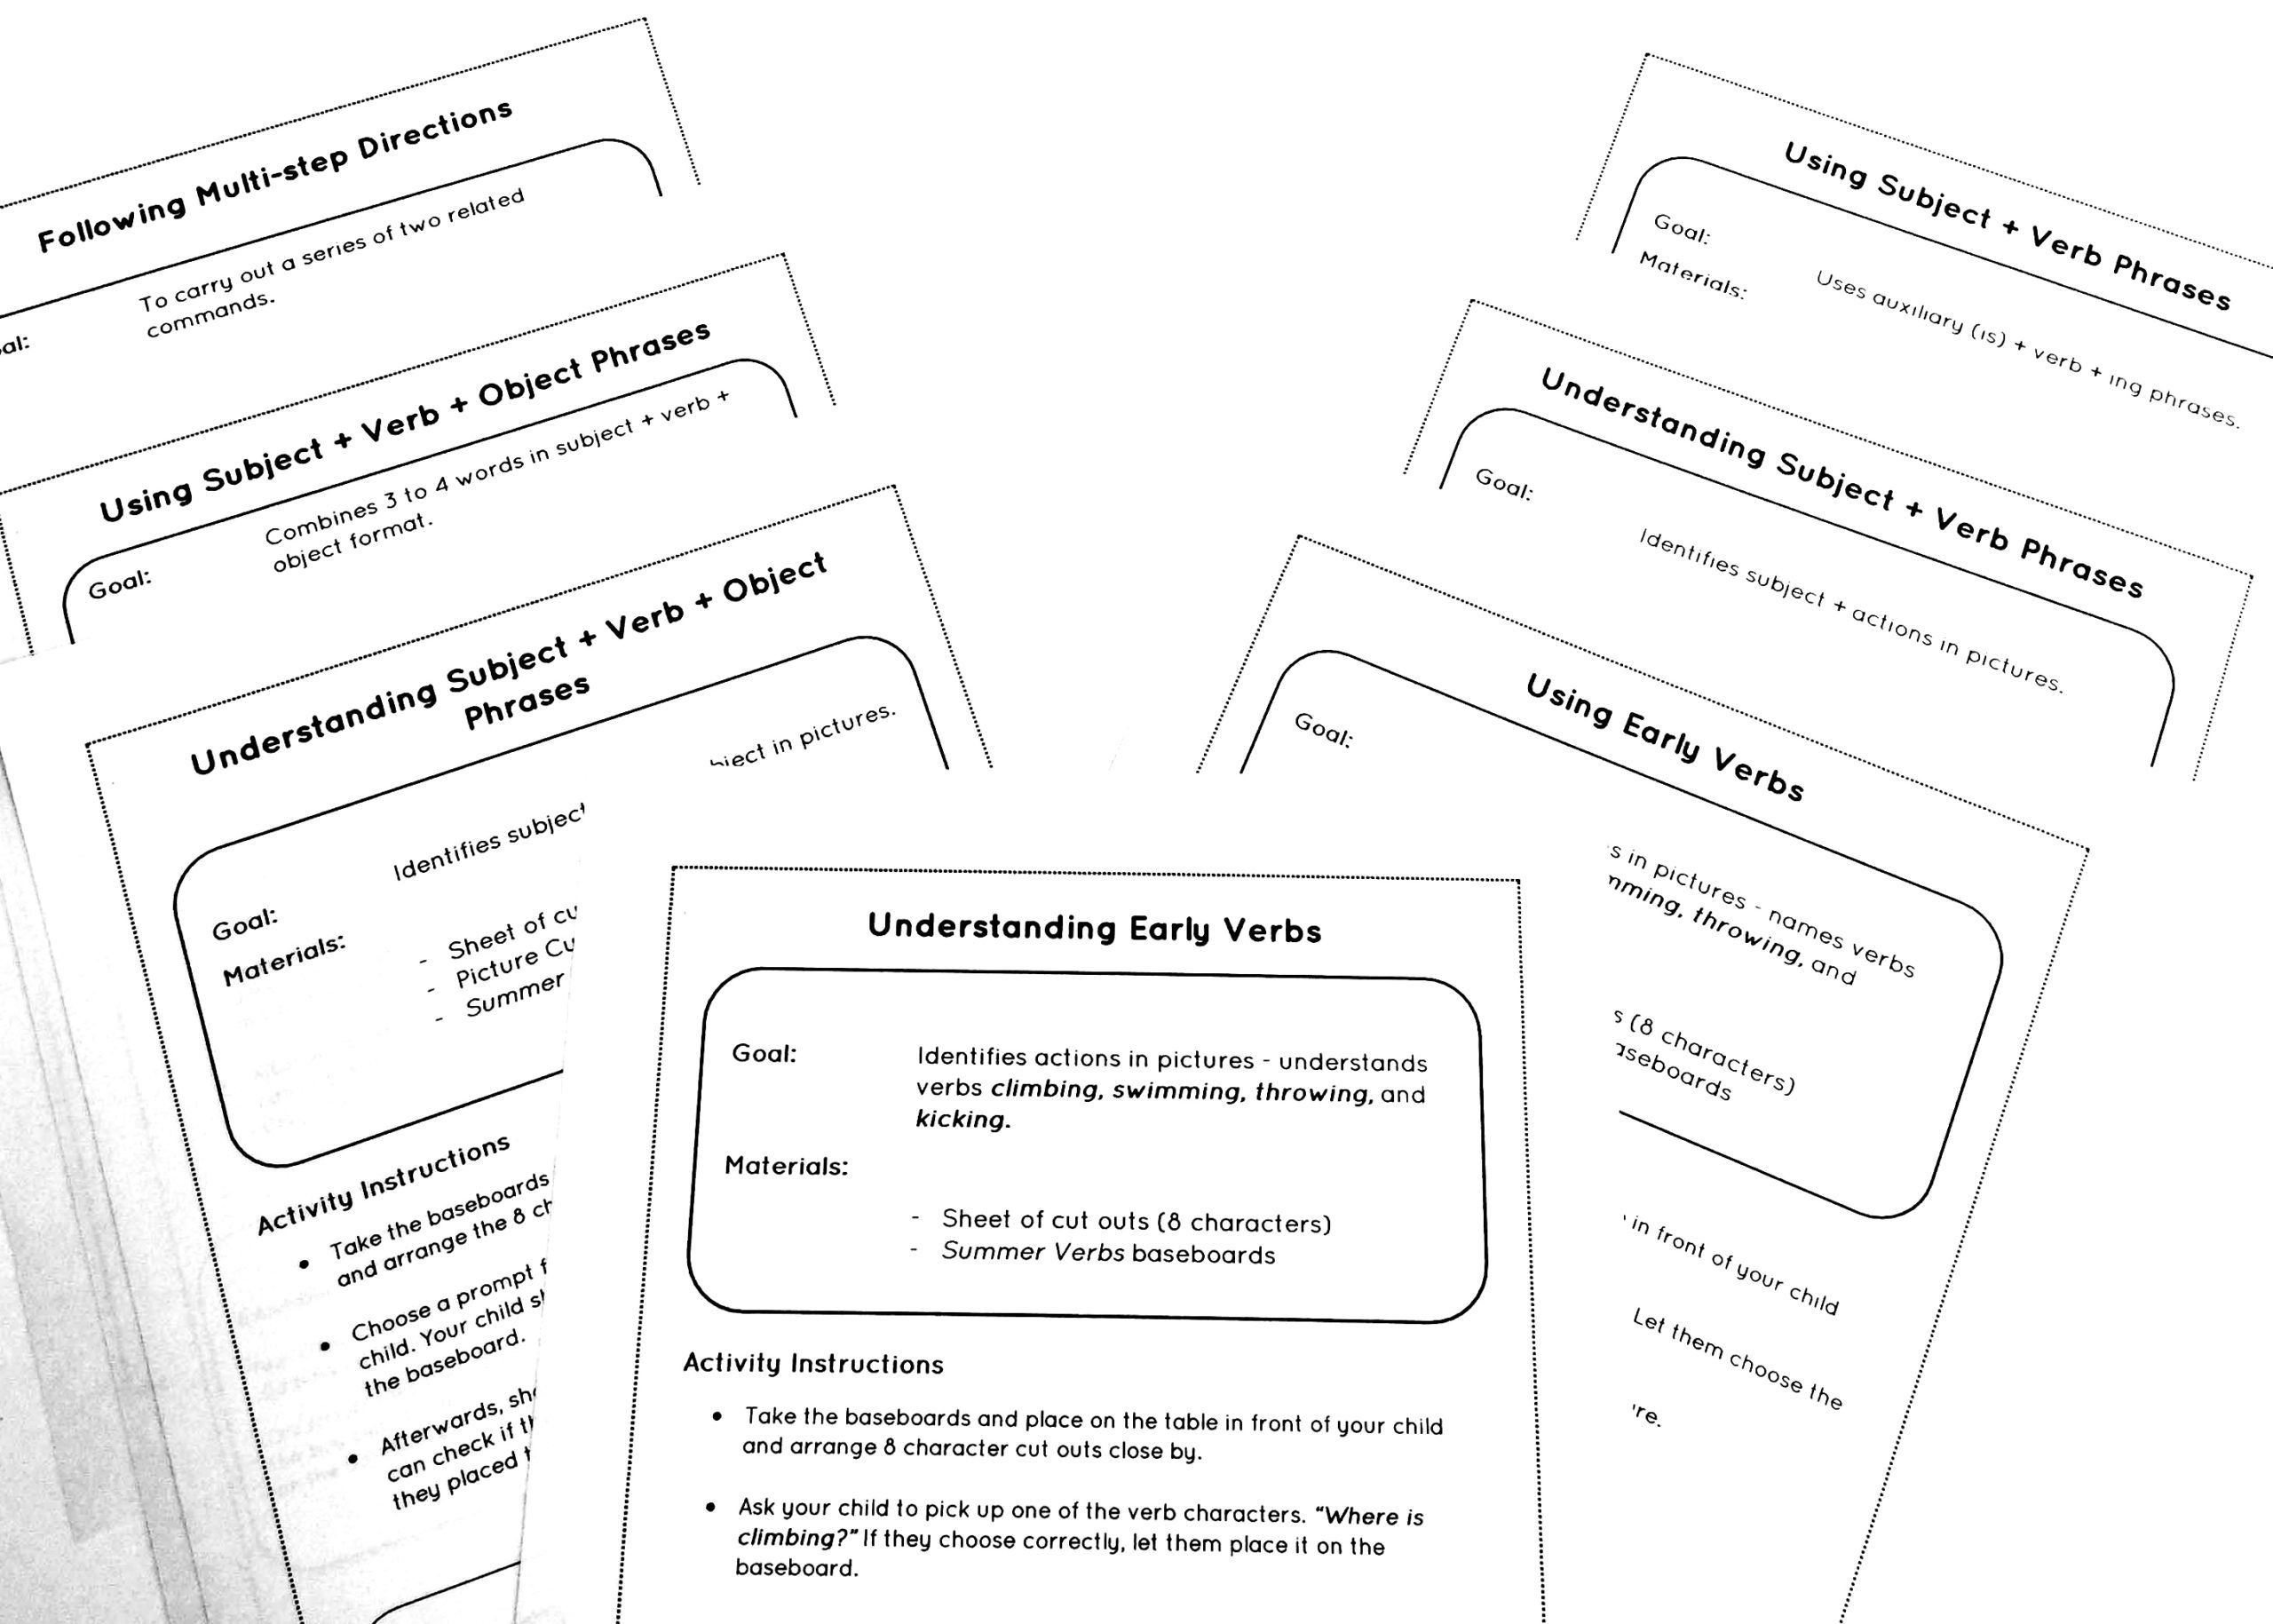 Following Multistep Directions Worksheets